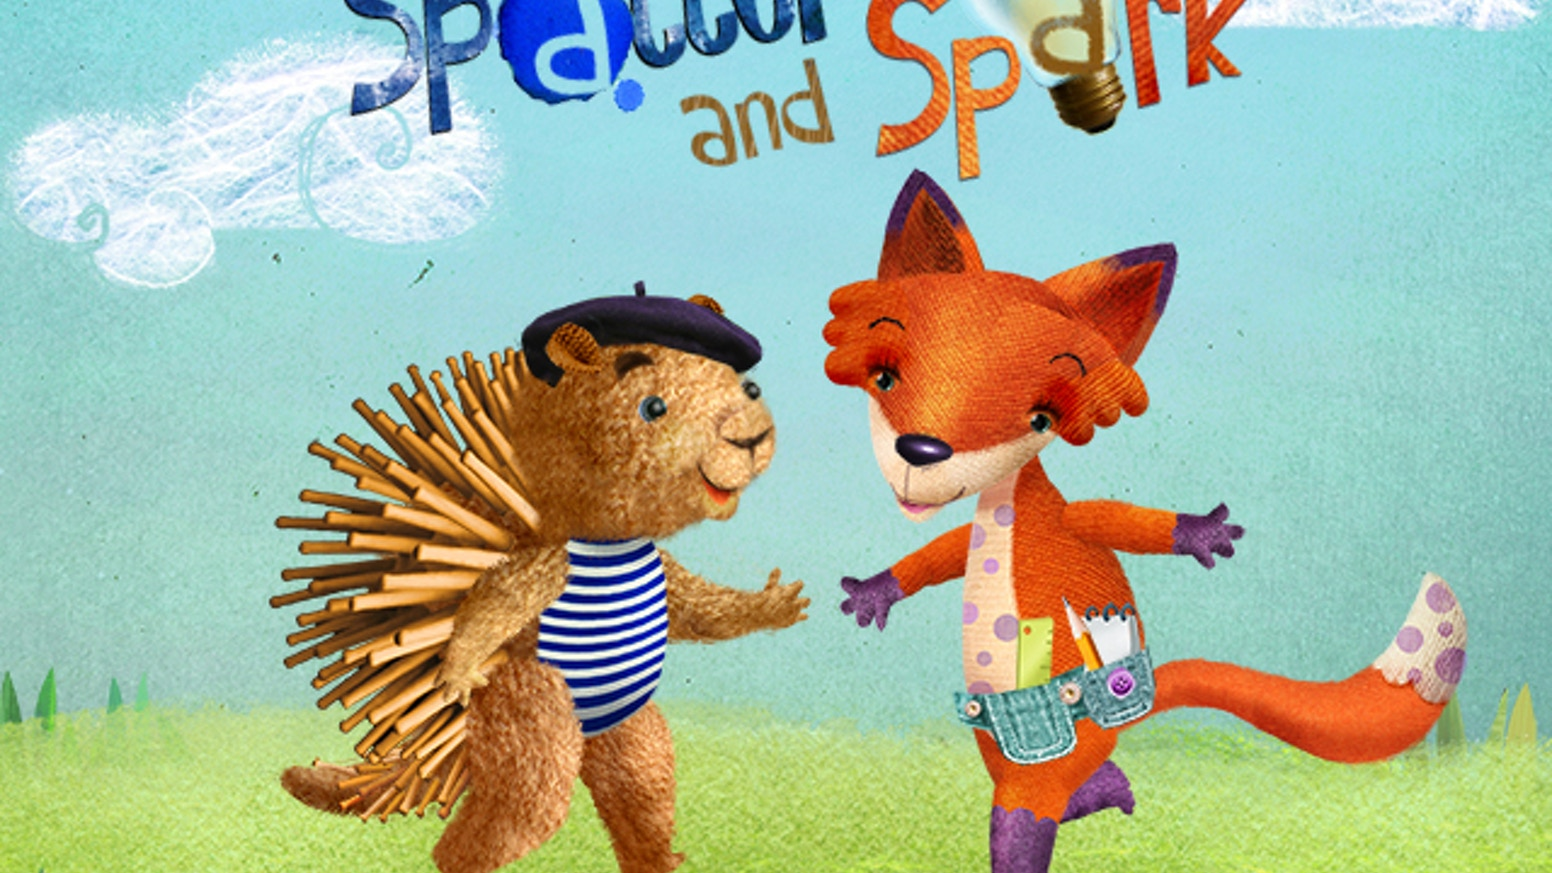 Spatter & Spark: Interactive Story & Activities App for Kids